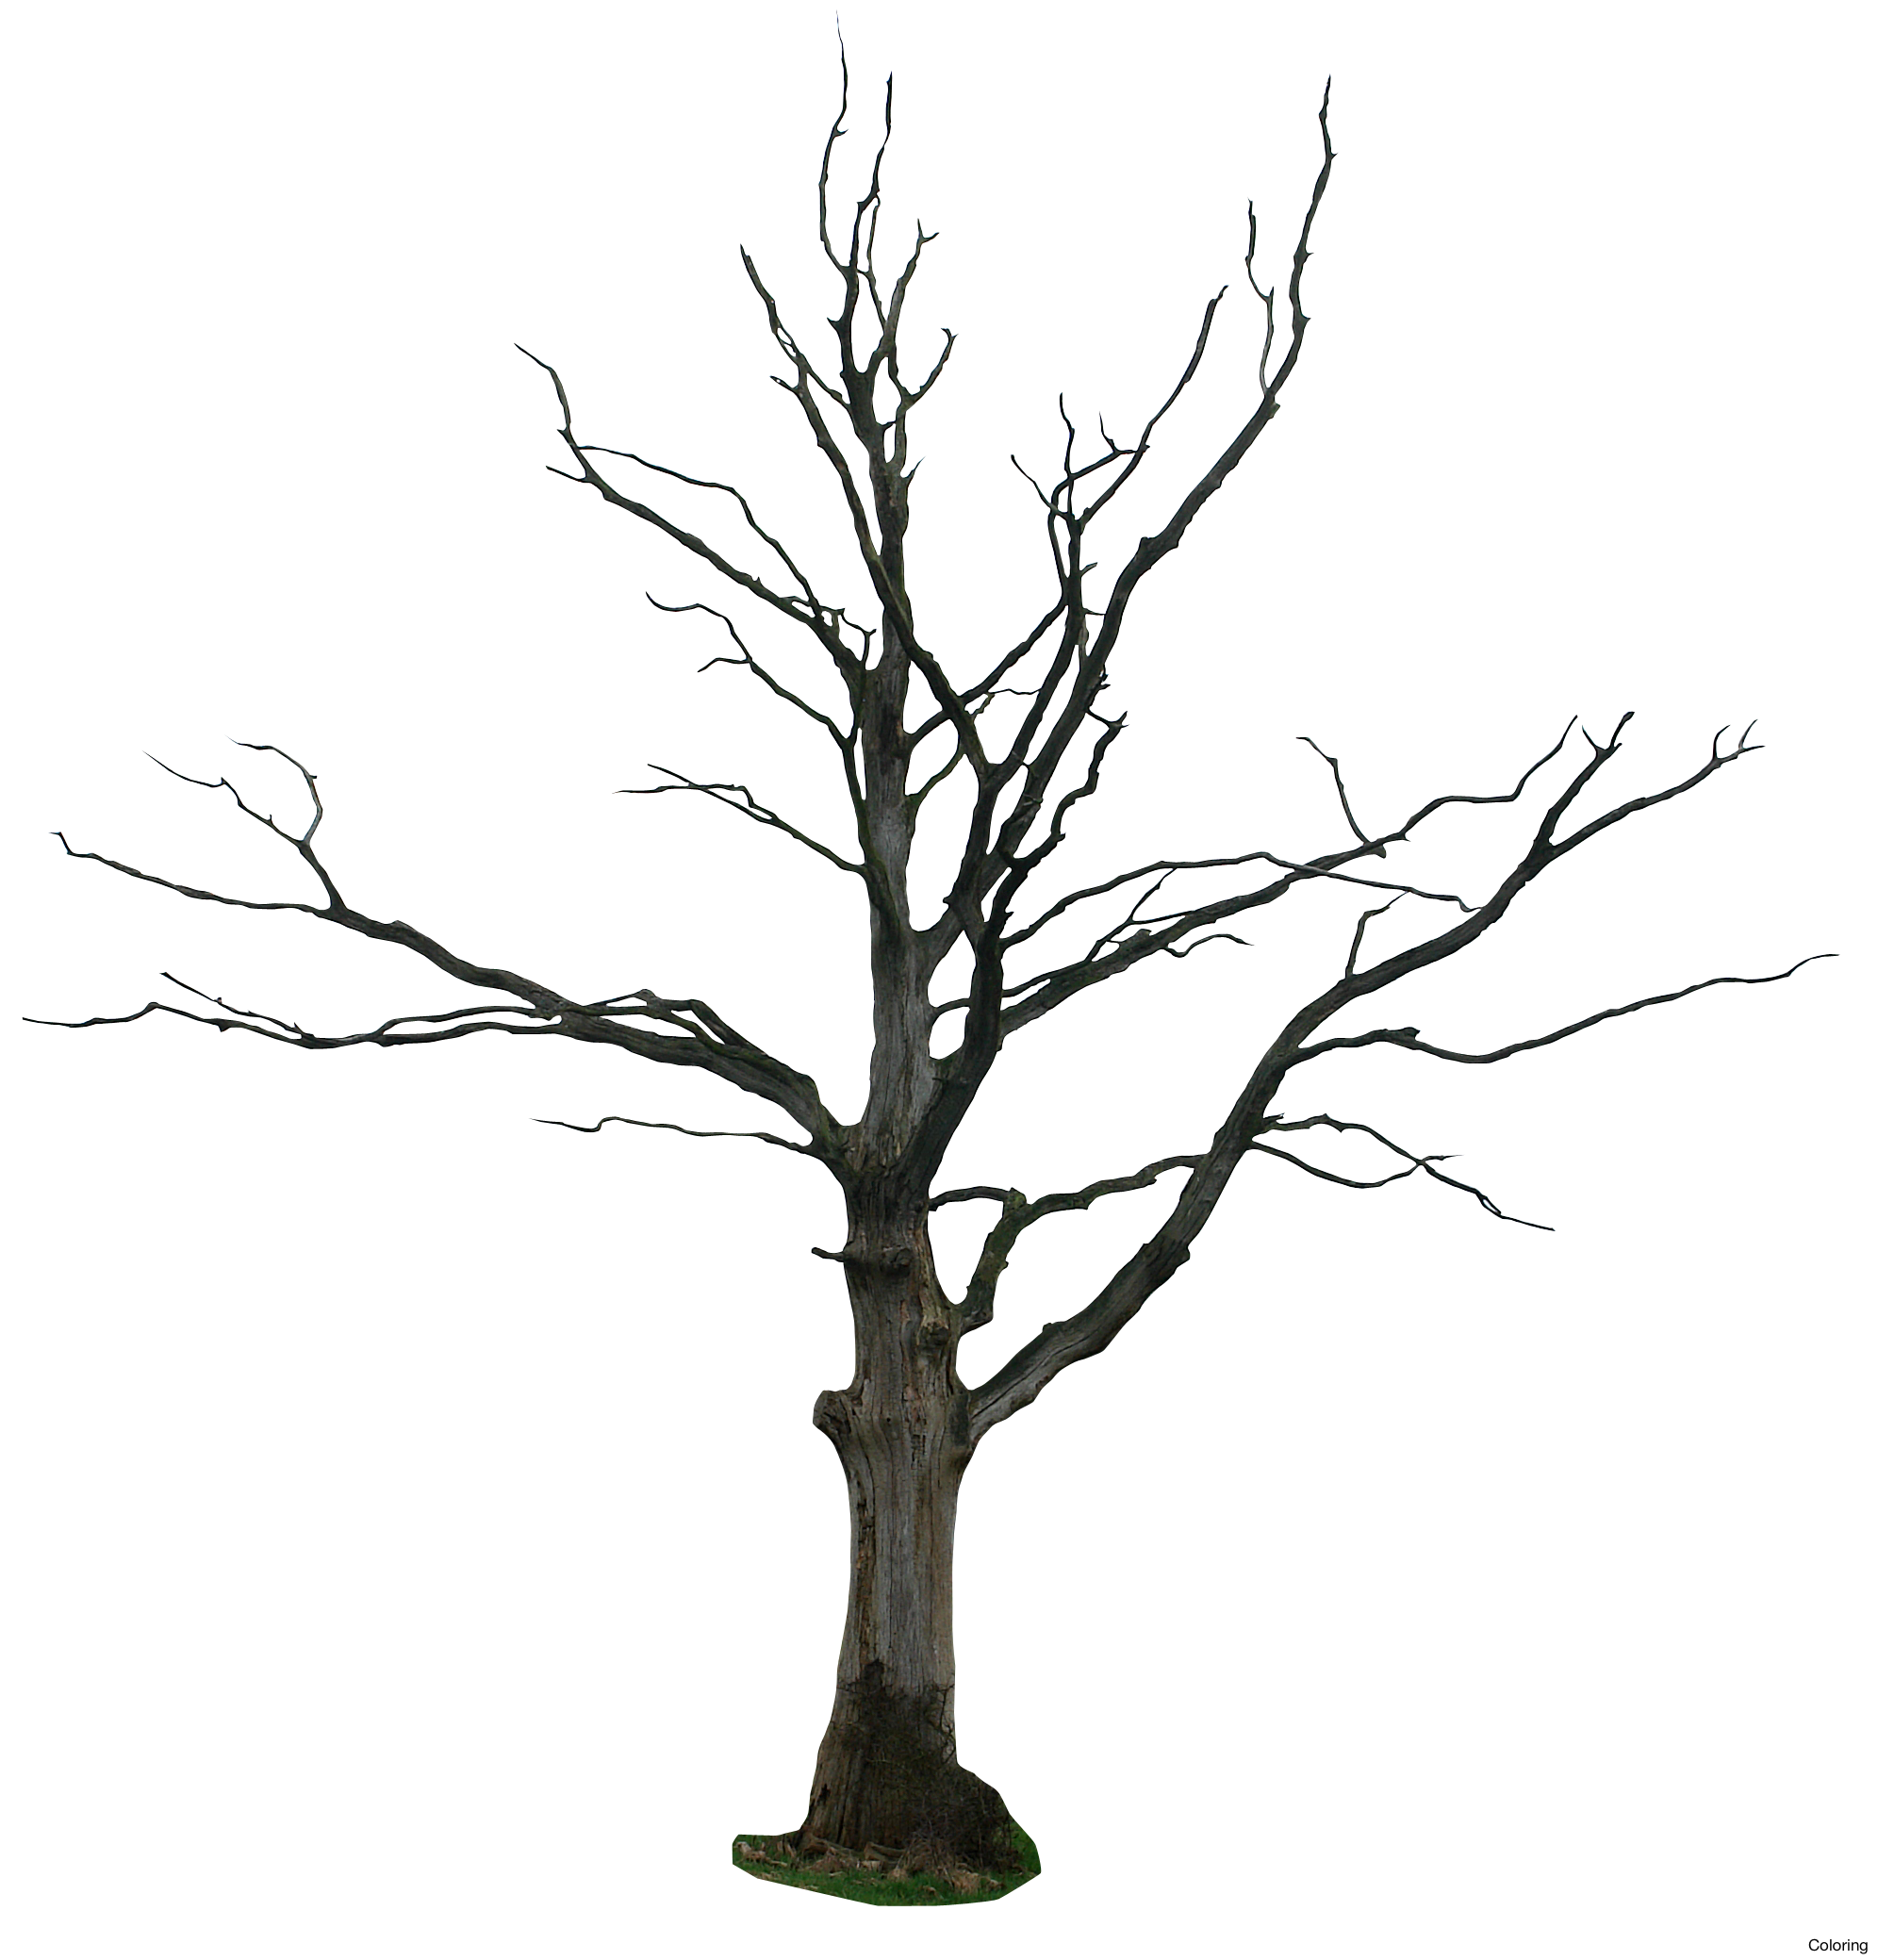 Wicked dead tree clipart graphic black and white Wicked Tree Drawings | Free download best Wicked Tree ... graphic black and white